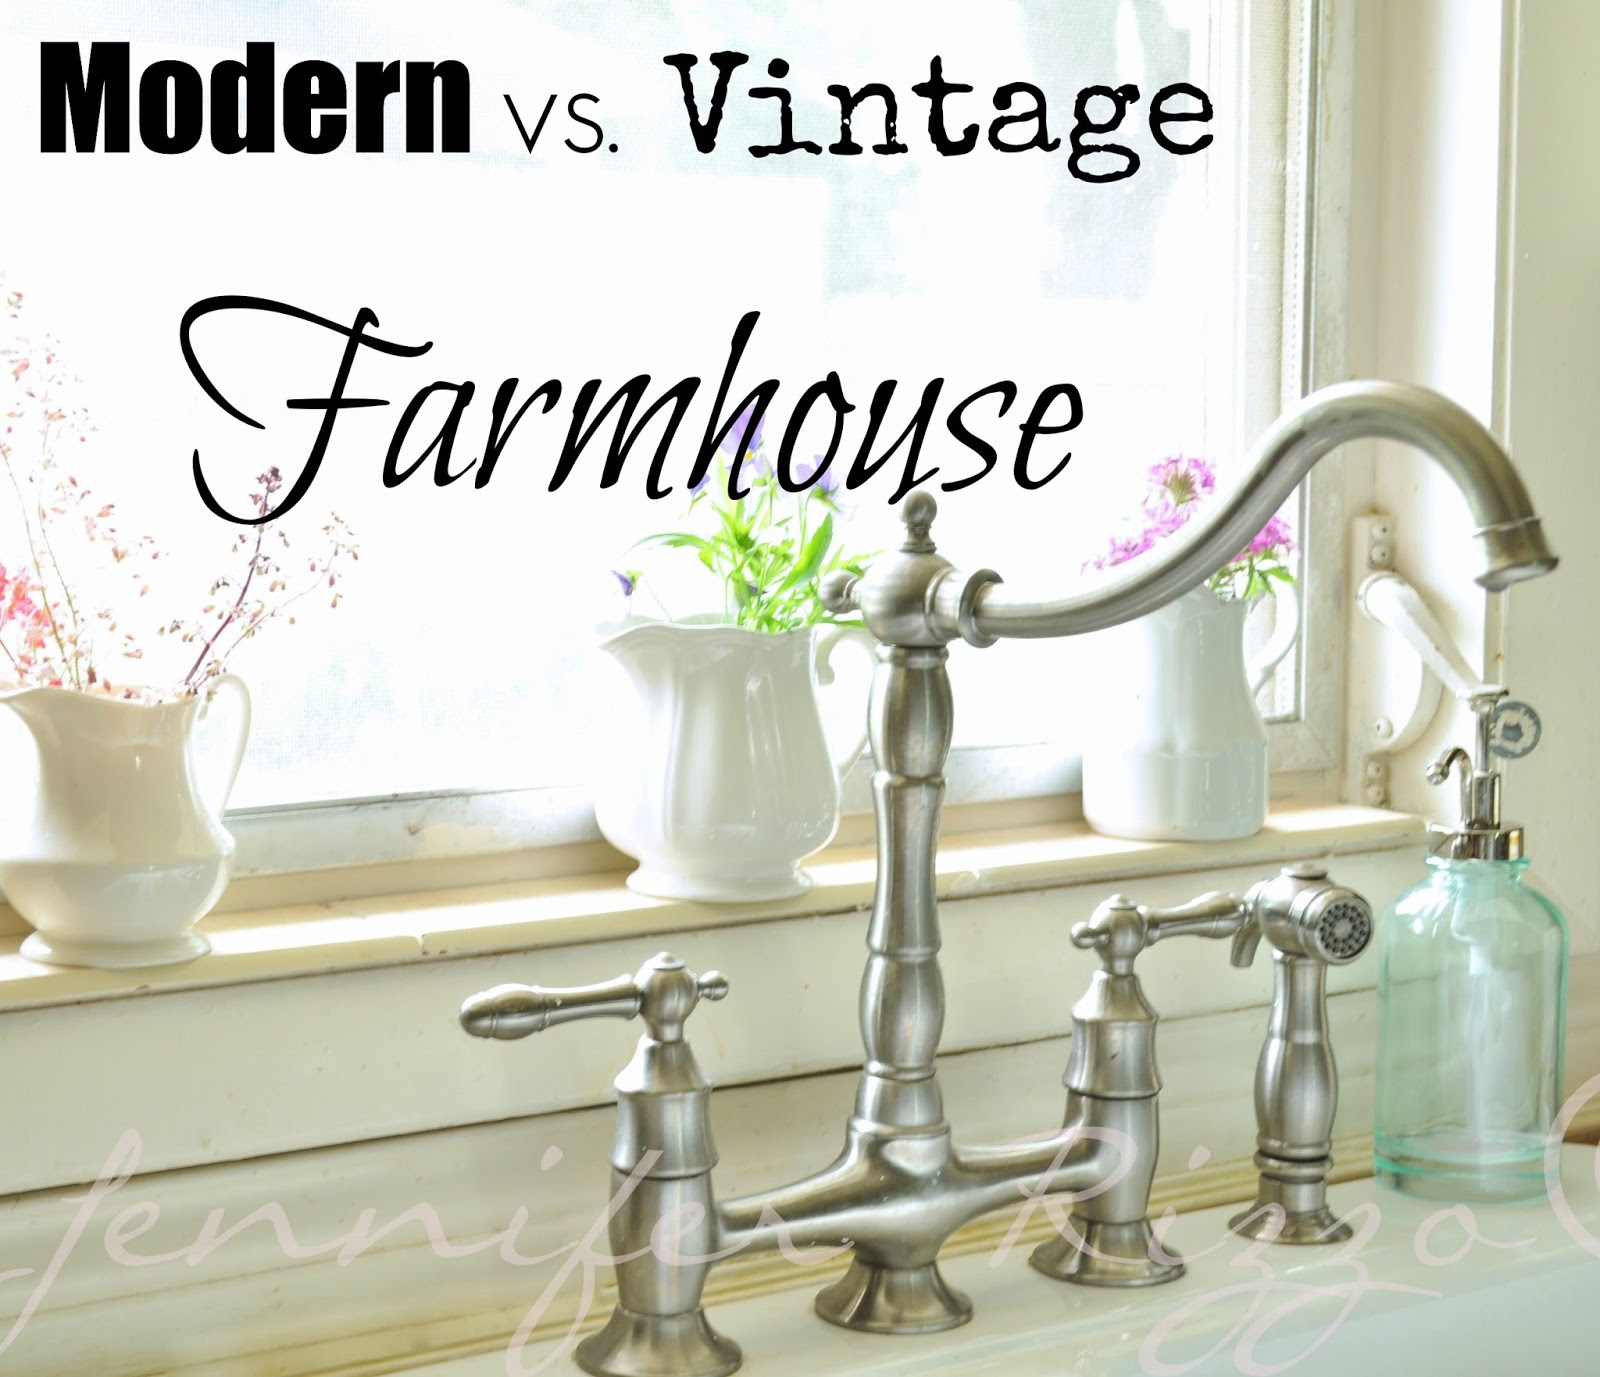 modern vs vintage farmhouse farmhouse faucet kitchen The difference between modern vs vintage farmhouse